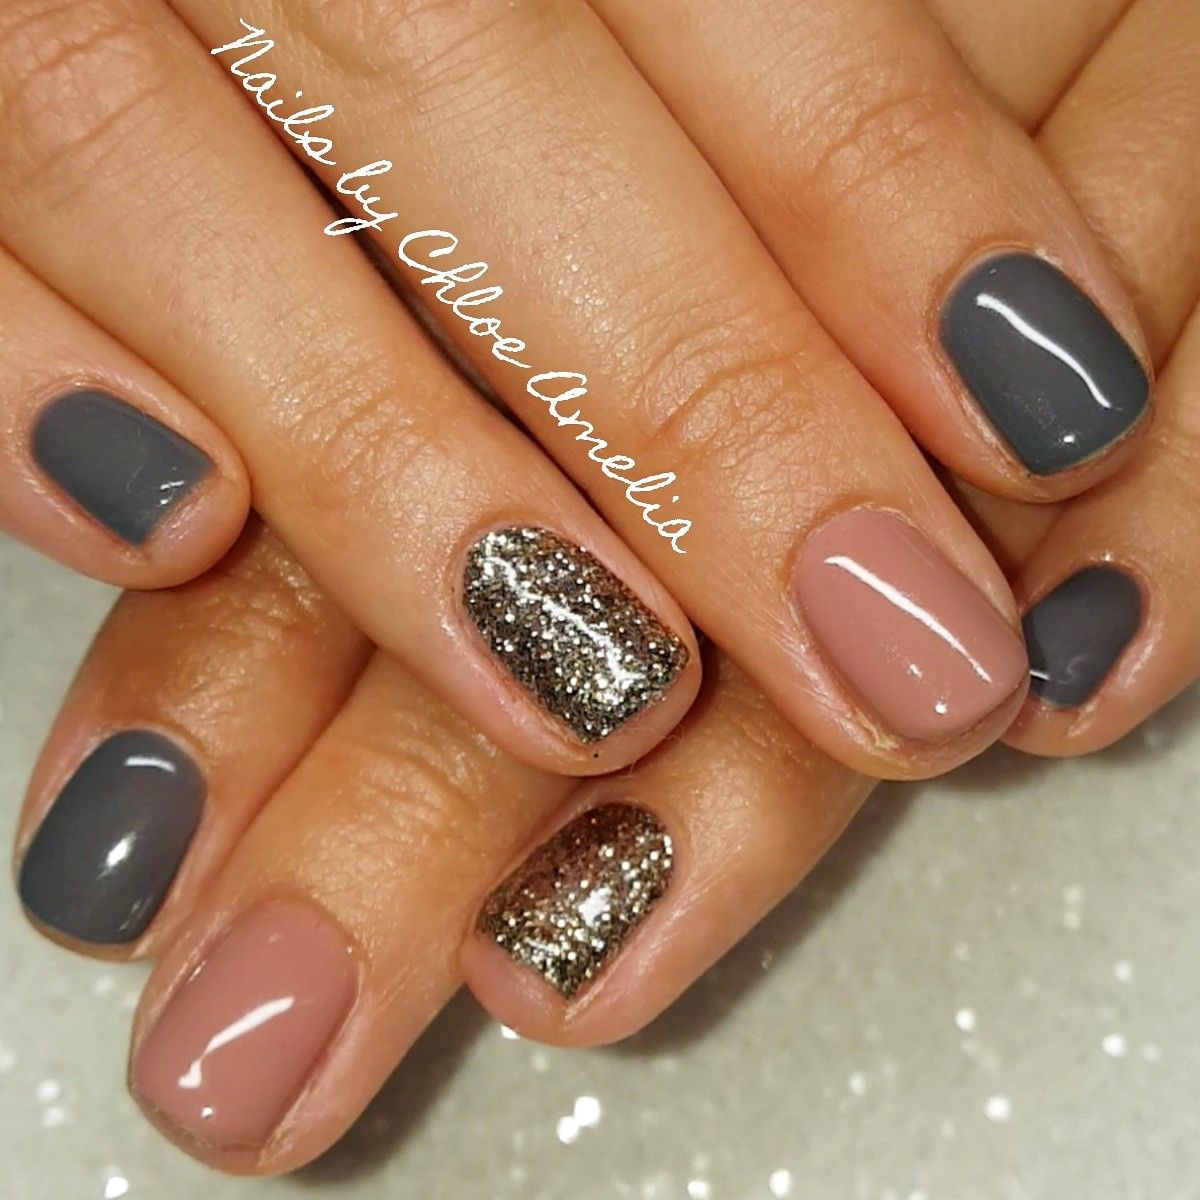 Calgel Nails Ready To Wear And Slate Grey Calgelnails Nails Gelnails Calgel Nails Nails Gel Nails